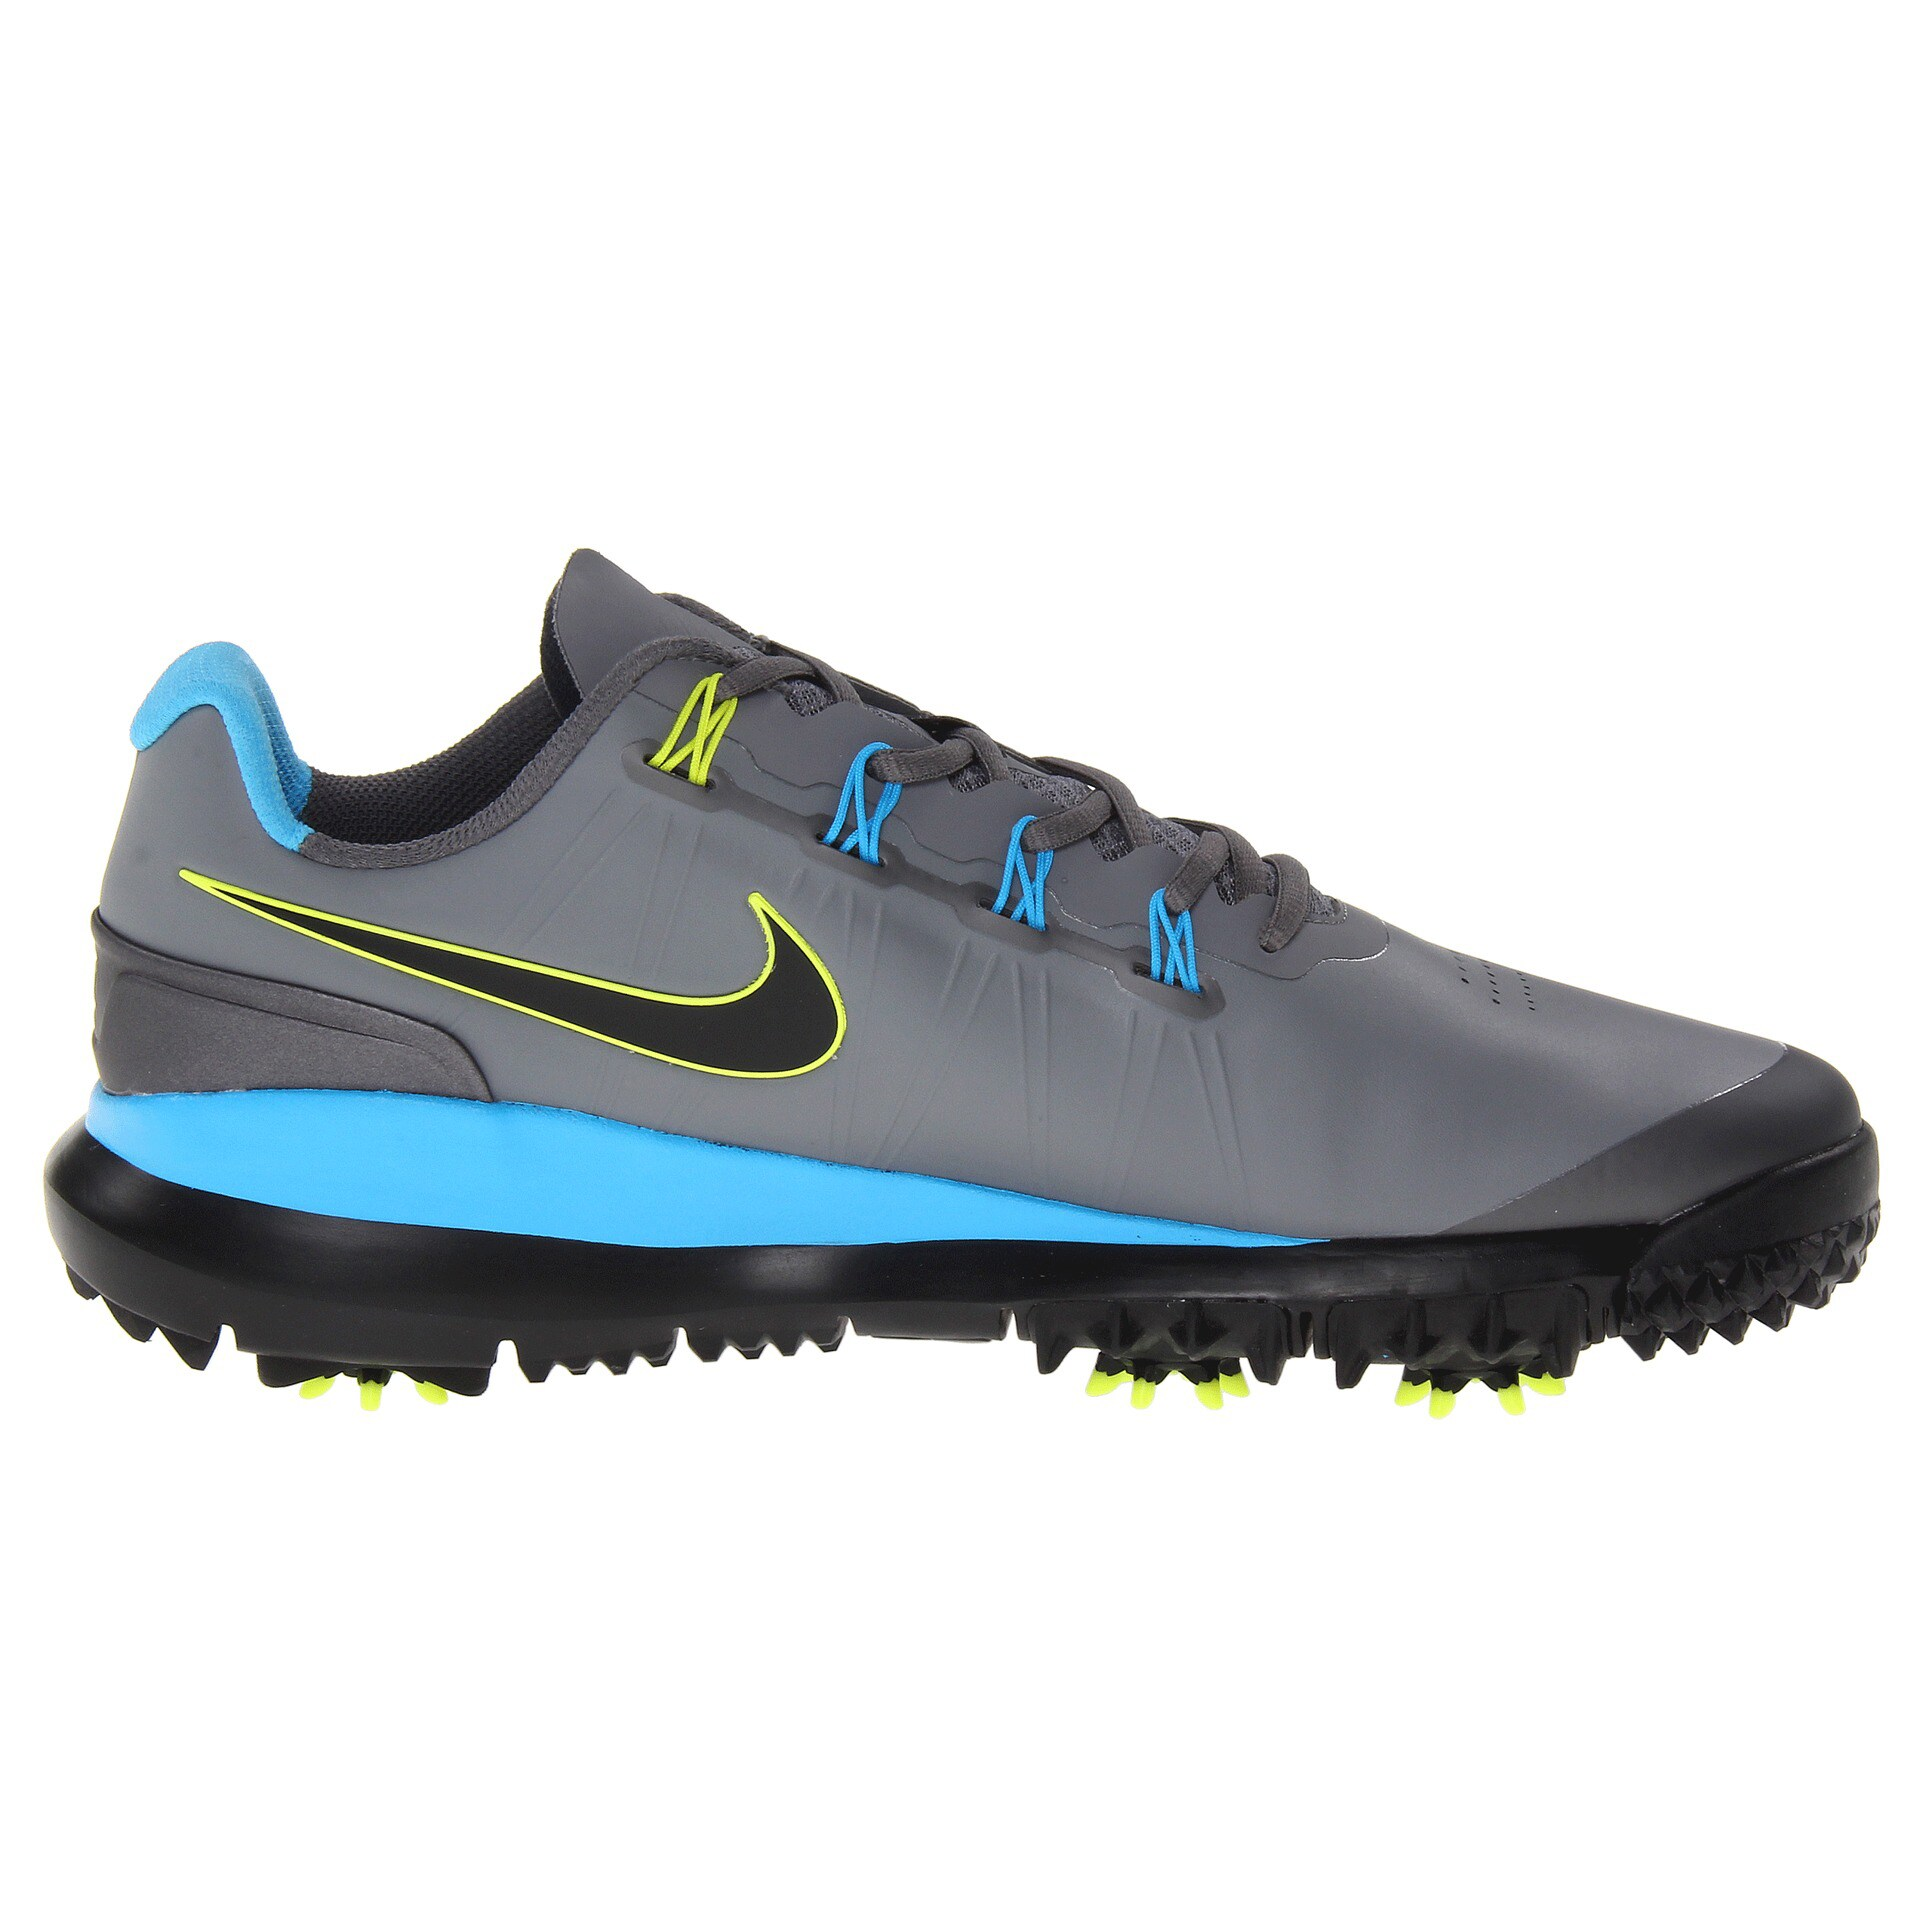 Step Up 3 Shoes Nike Nike-tw-14-mens-golf-shoes-l